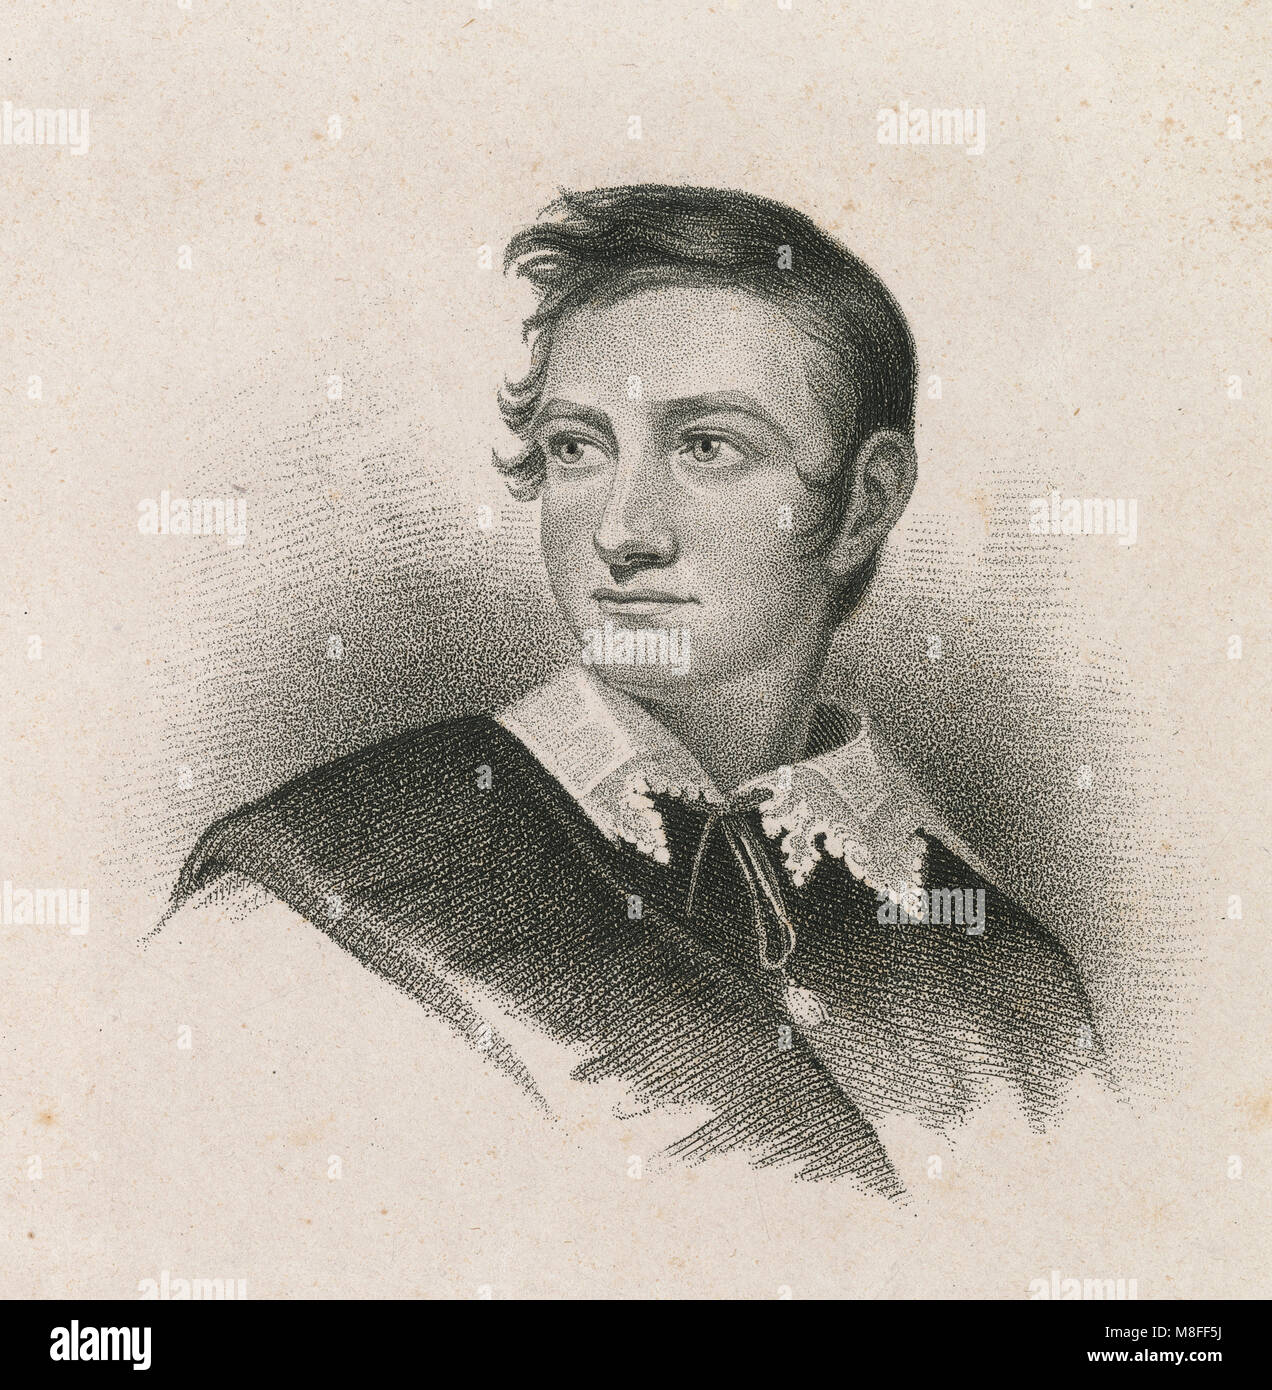 Antique c1830 engraving, John Howard Payne (June 9, 1791 – April 10, 1852) was an American actor, poet, playwright, - Stock Image